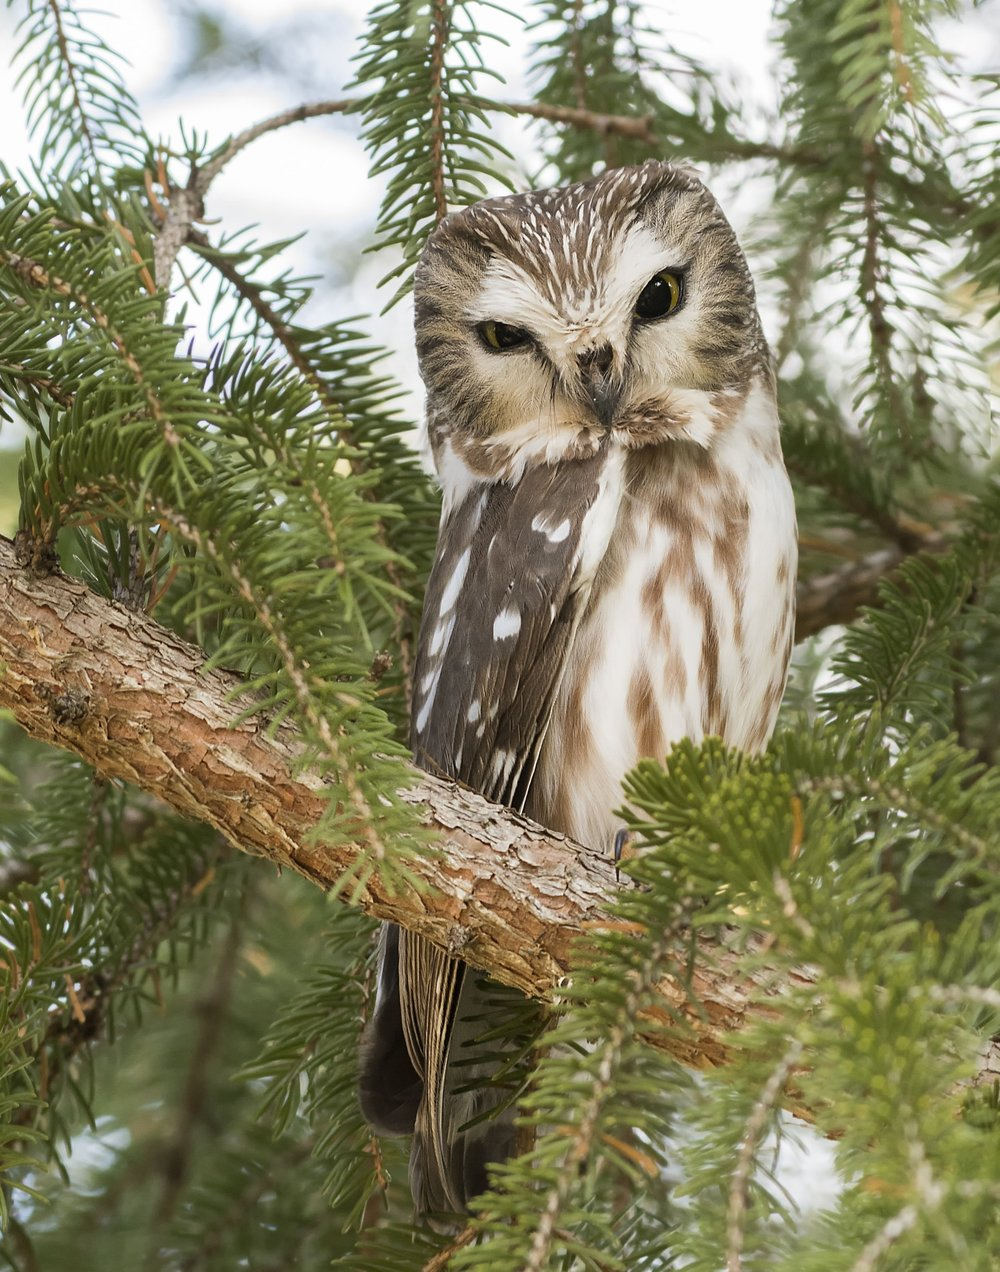 Saw Whet Owl - This little owl is not the easiest owl to find. They are about the size of an iPhone and blend into their surroundings really well. I must admit Saw Whets are about the cutest owl out there.